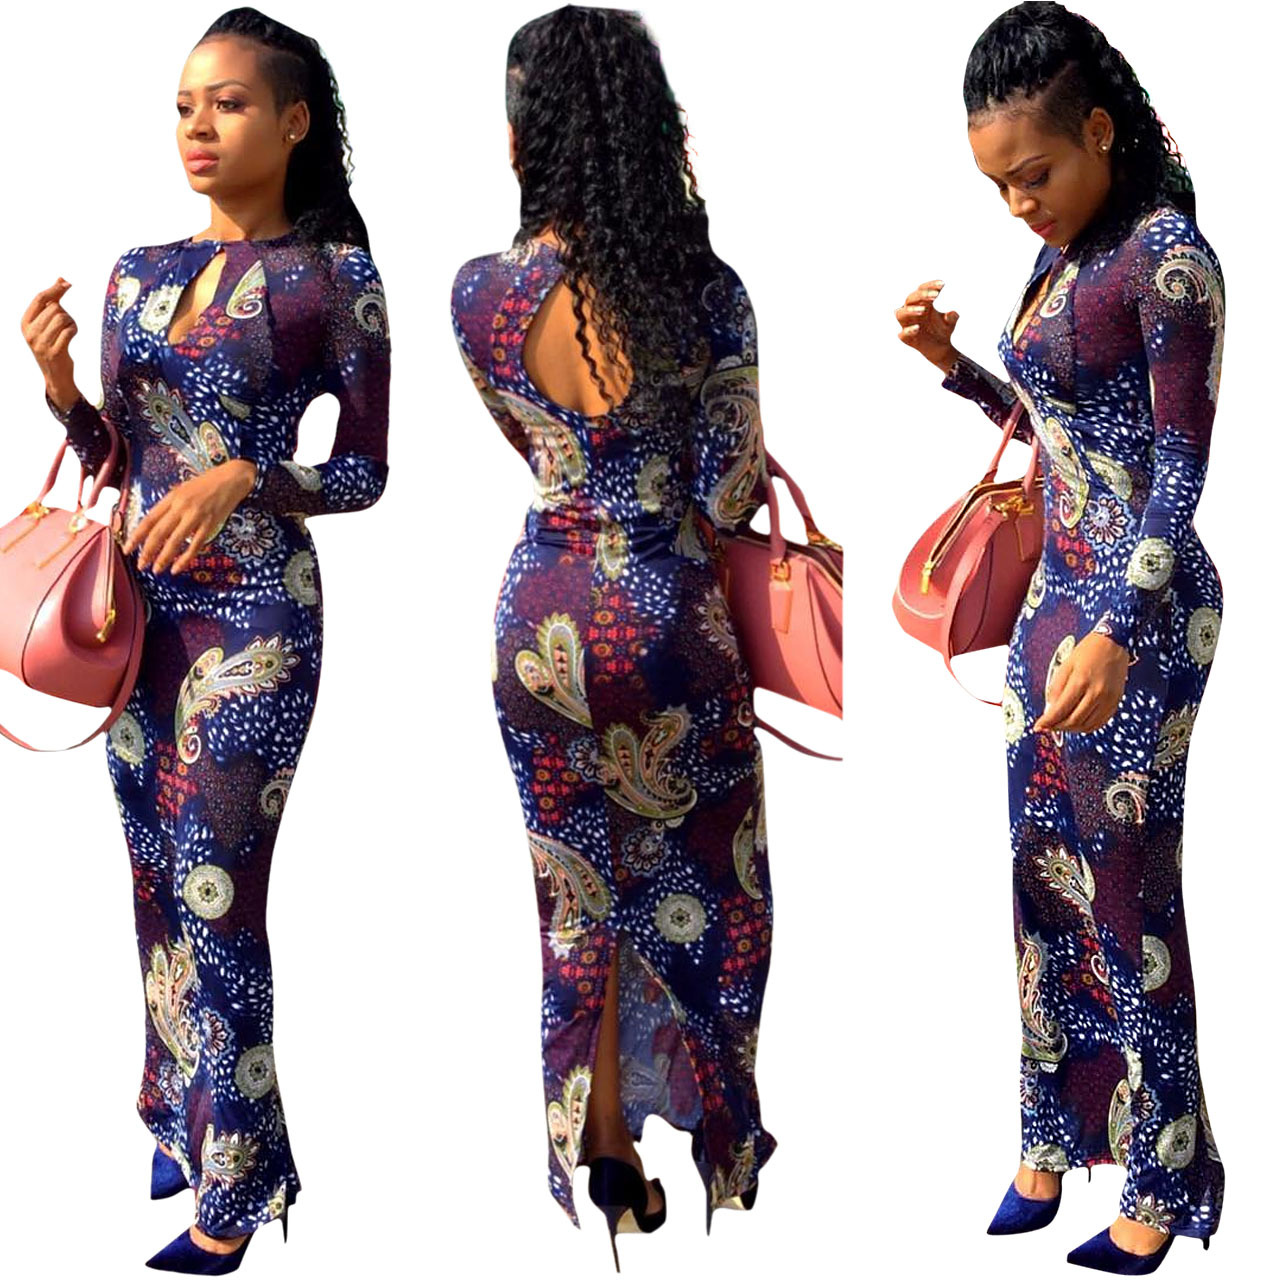 African Women Fashion: 2017 Polyester Rushed 2017african National Wind Digital